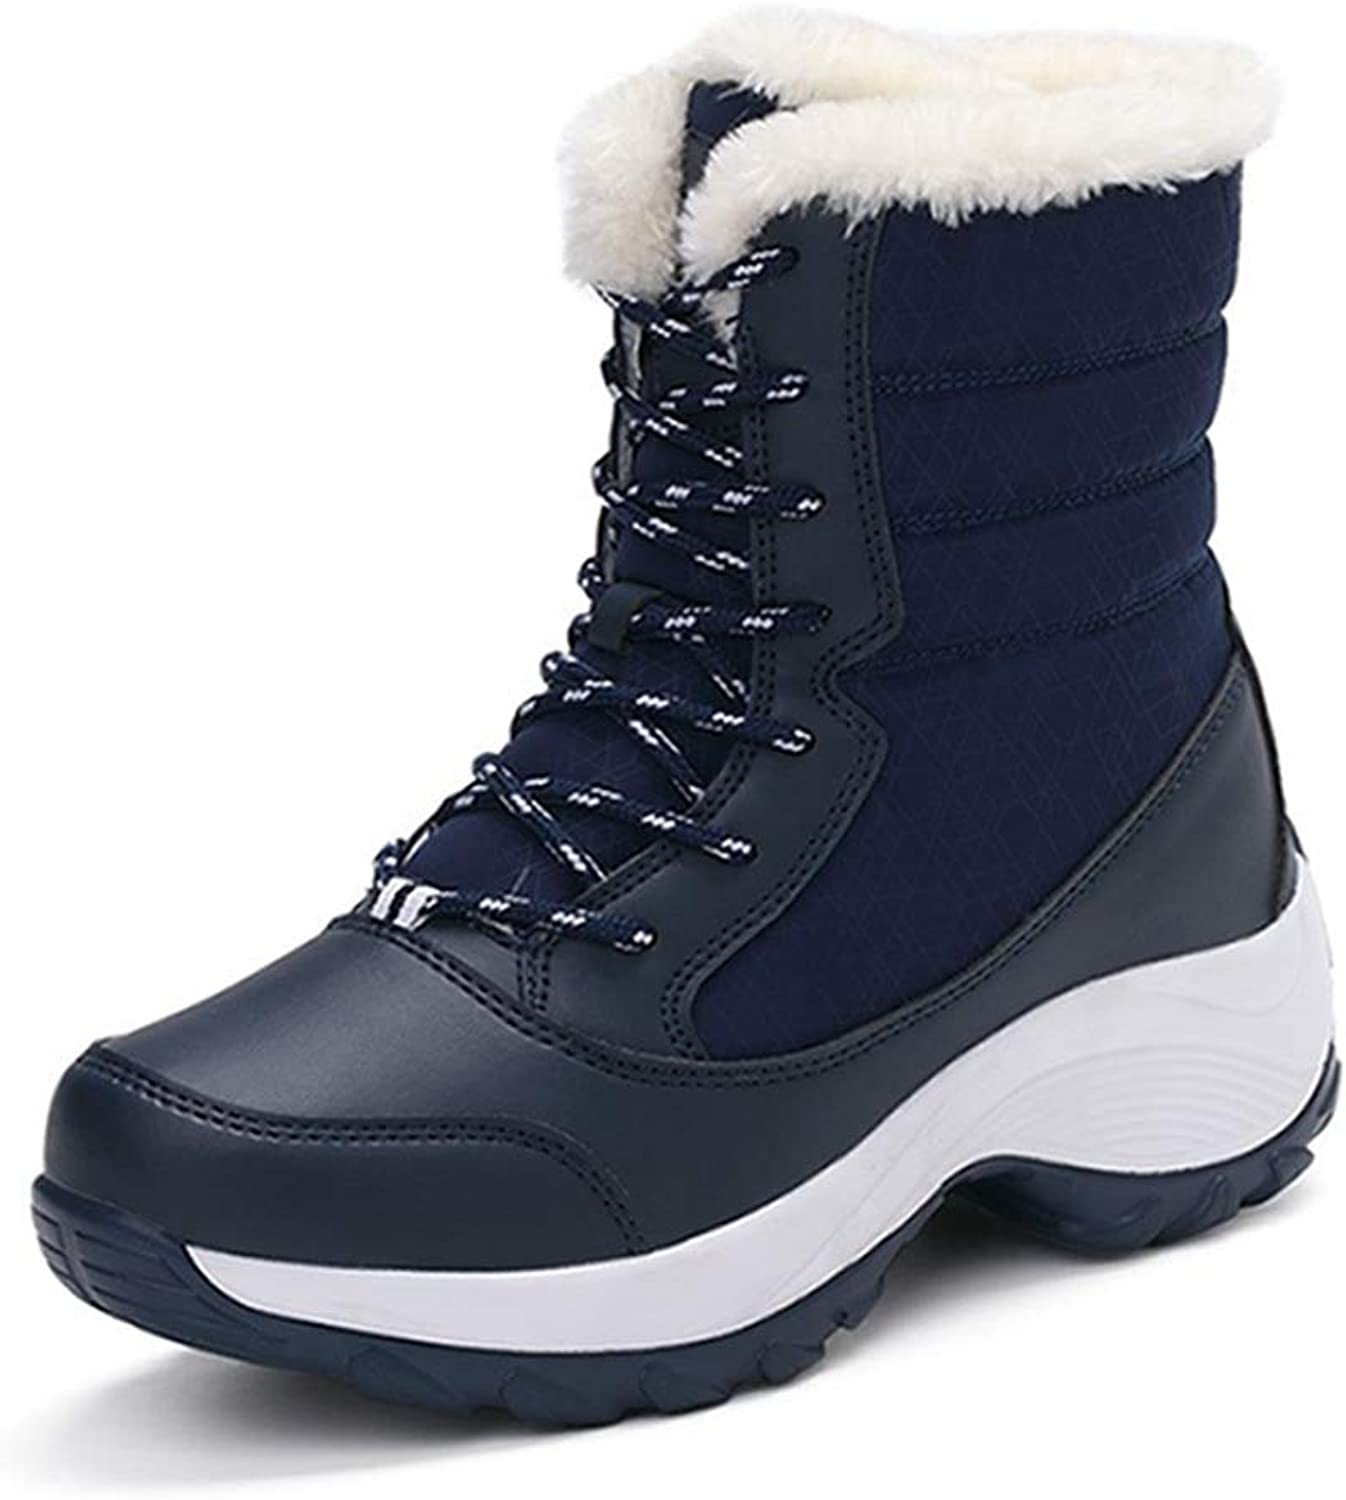 Fay Waters Womens Thick Fur Ankle Booties Waterproof Non-Slip Winter shoes Lace Up Platform Warm Snow Boots